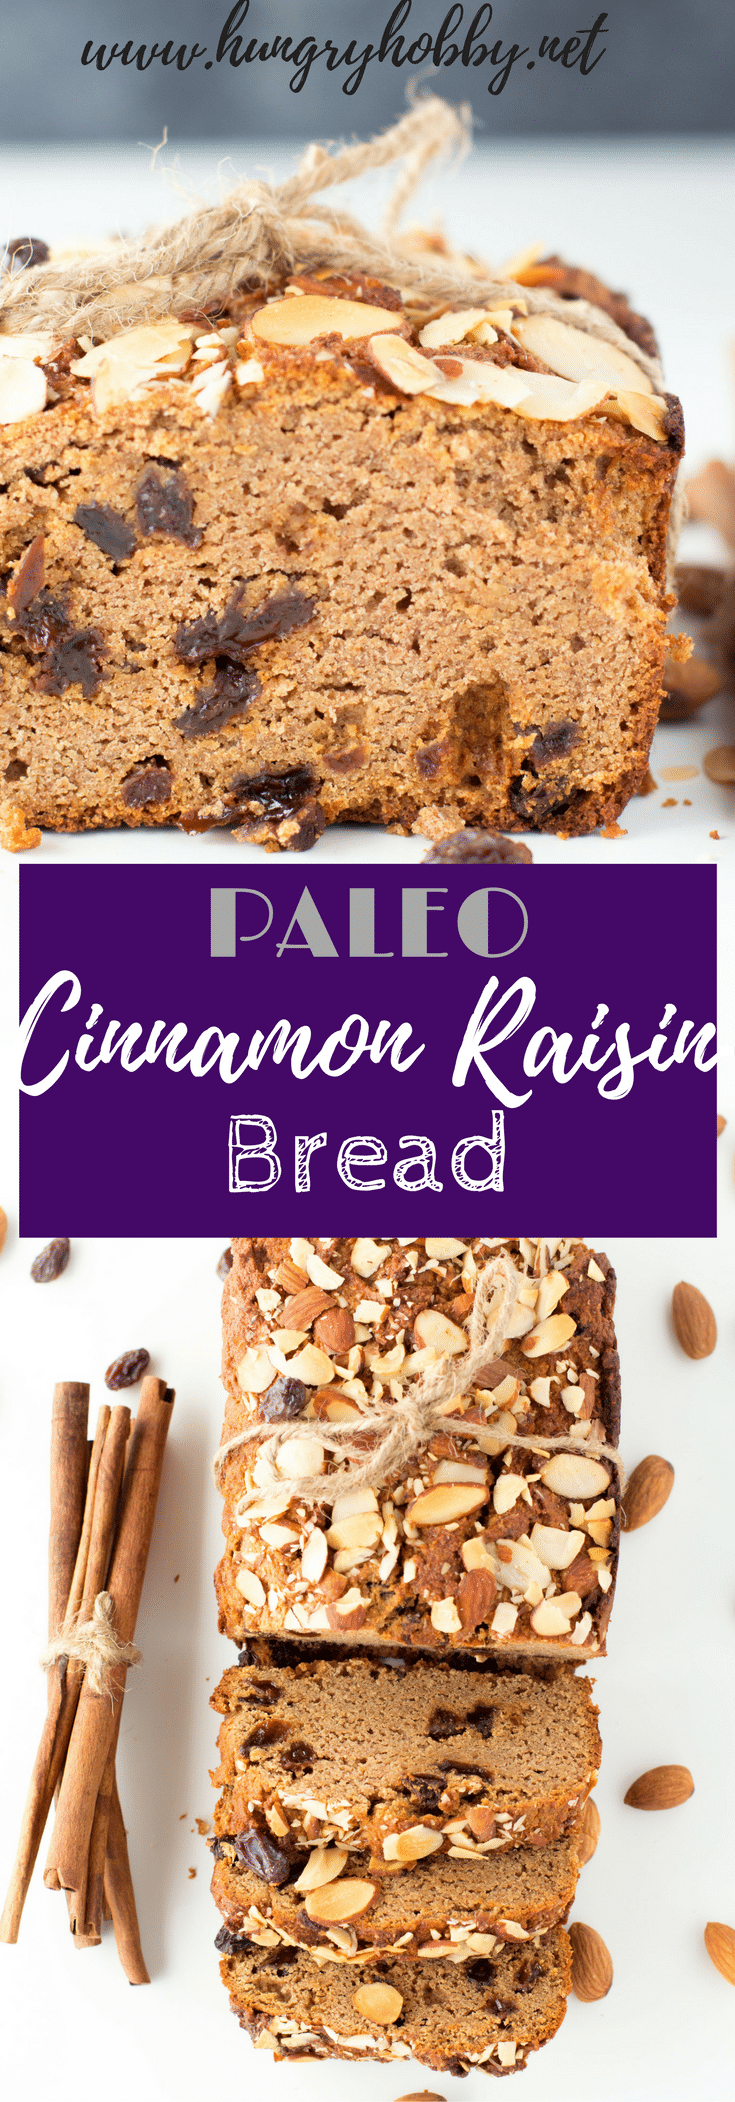 This Paleo Cinnamon Raisin Bread is a healthier but equally delicious version of your favorite sweet bread.  Be prepared to make more than one batch! #paleo #glutenfree #paleobread #lowcarb #lowcarbbread